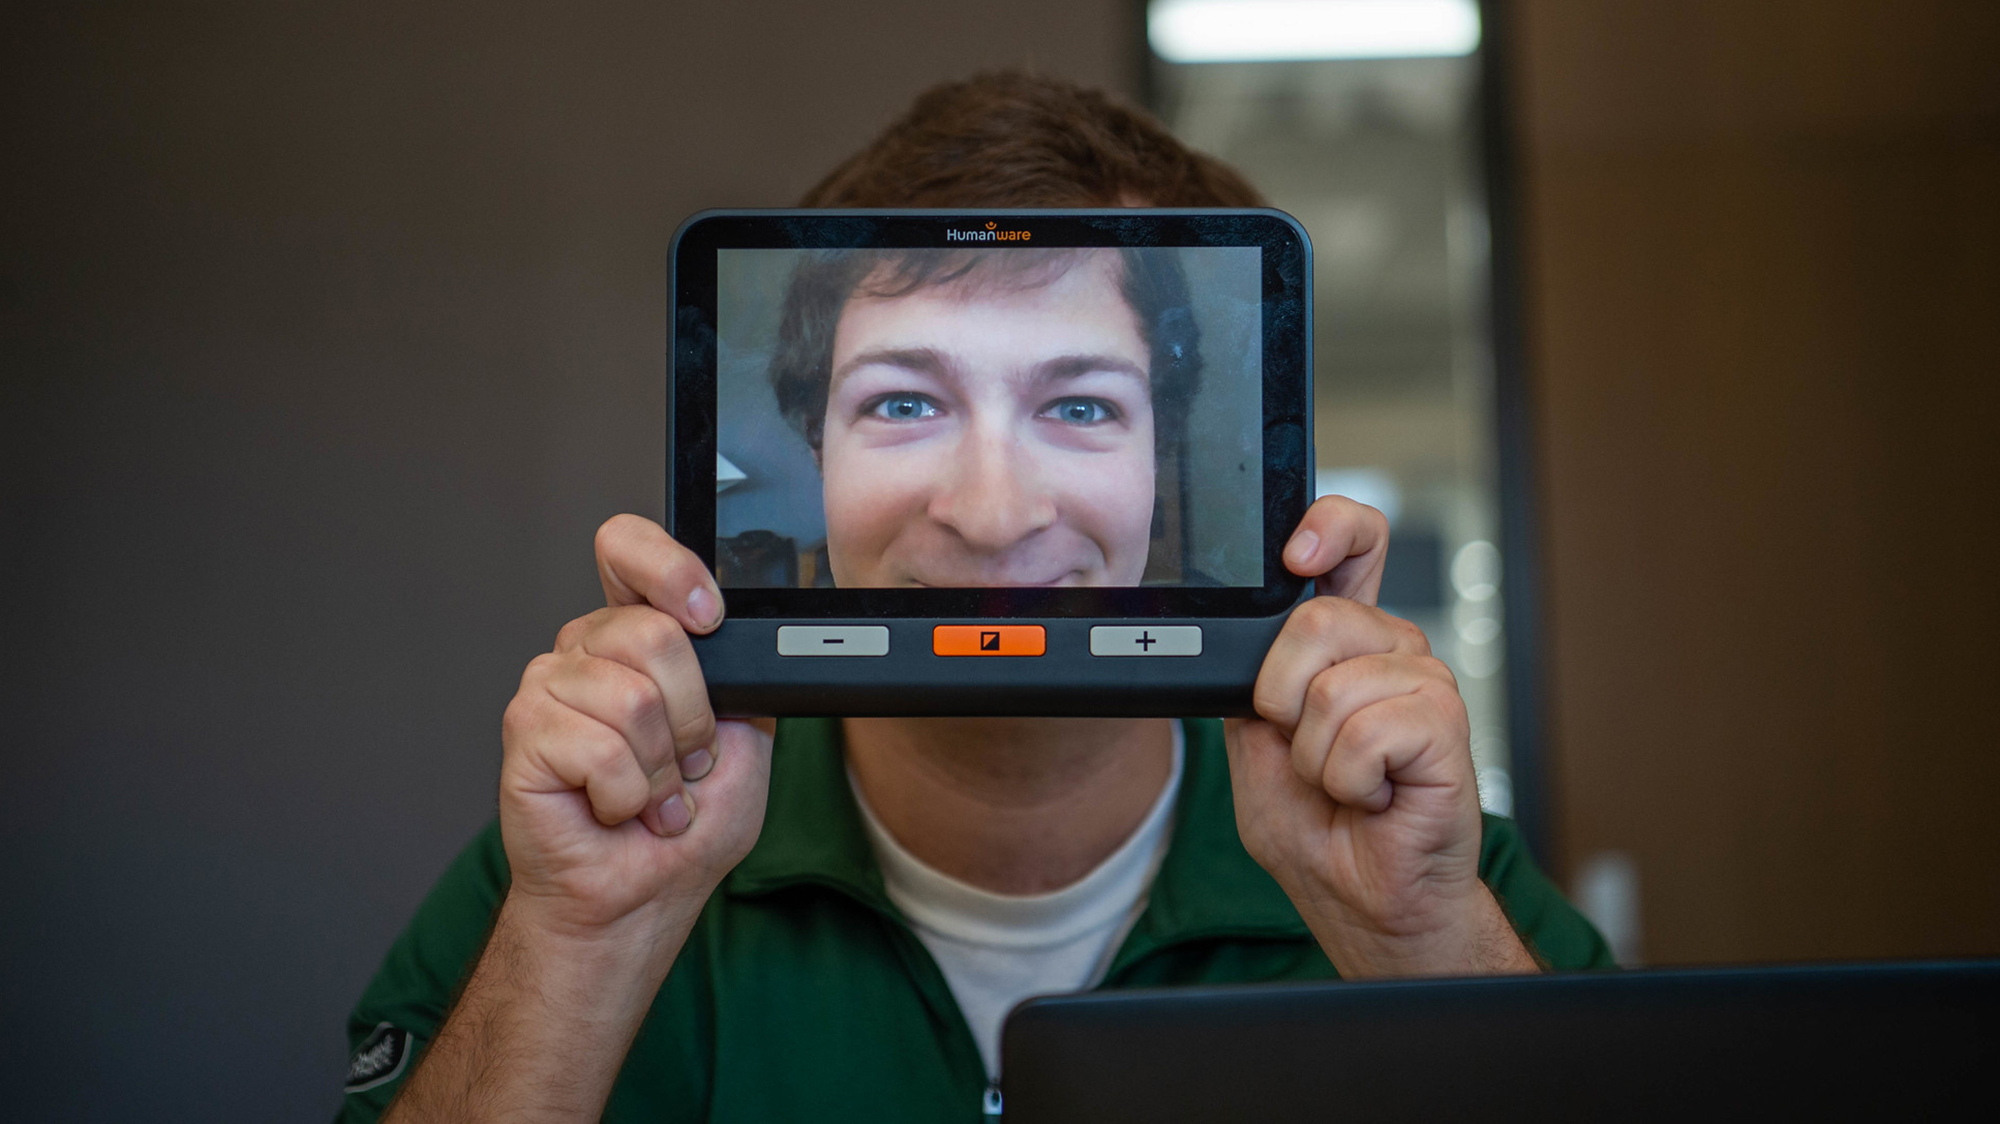 UWO Accessibility Center helps student see past his disability to success